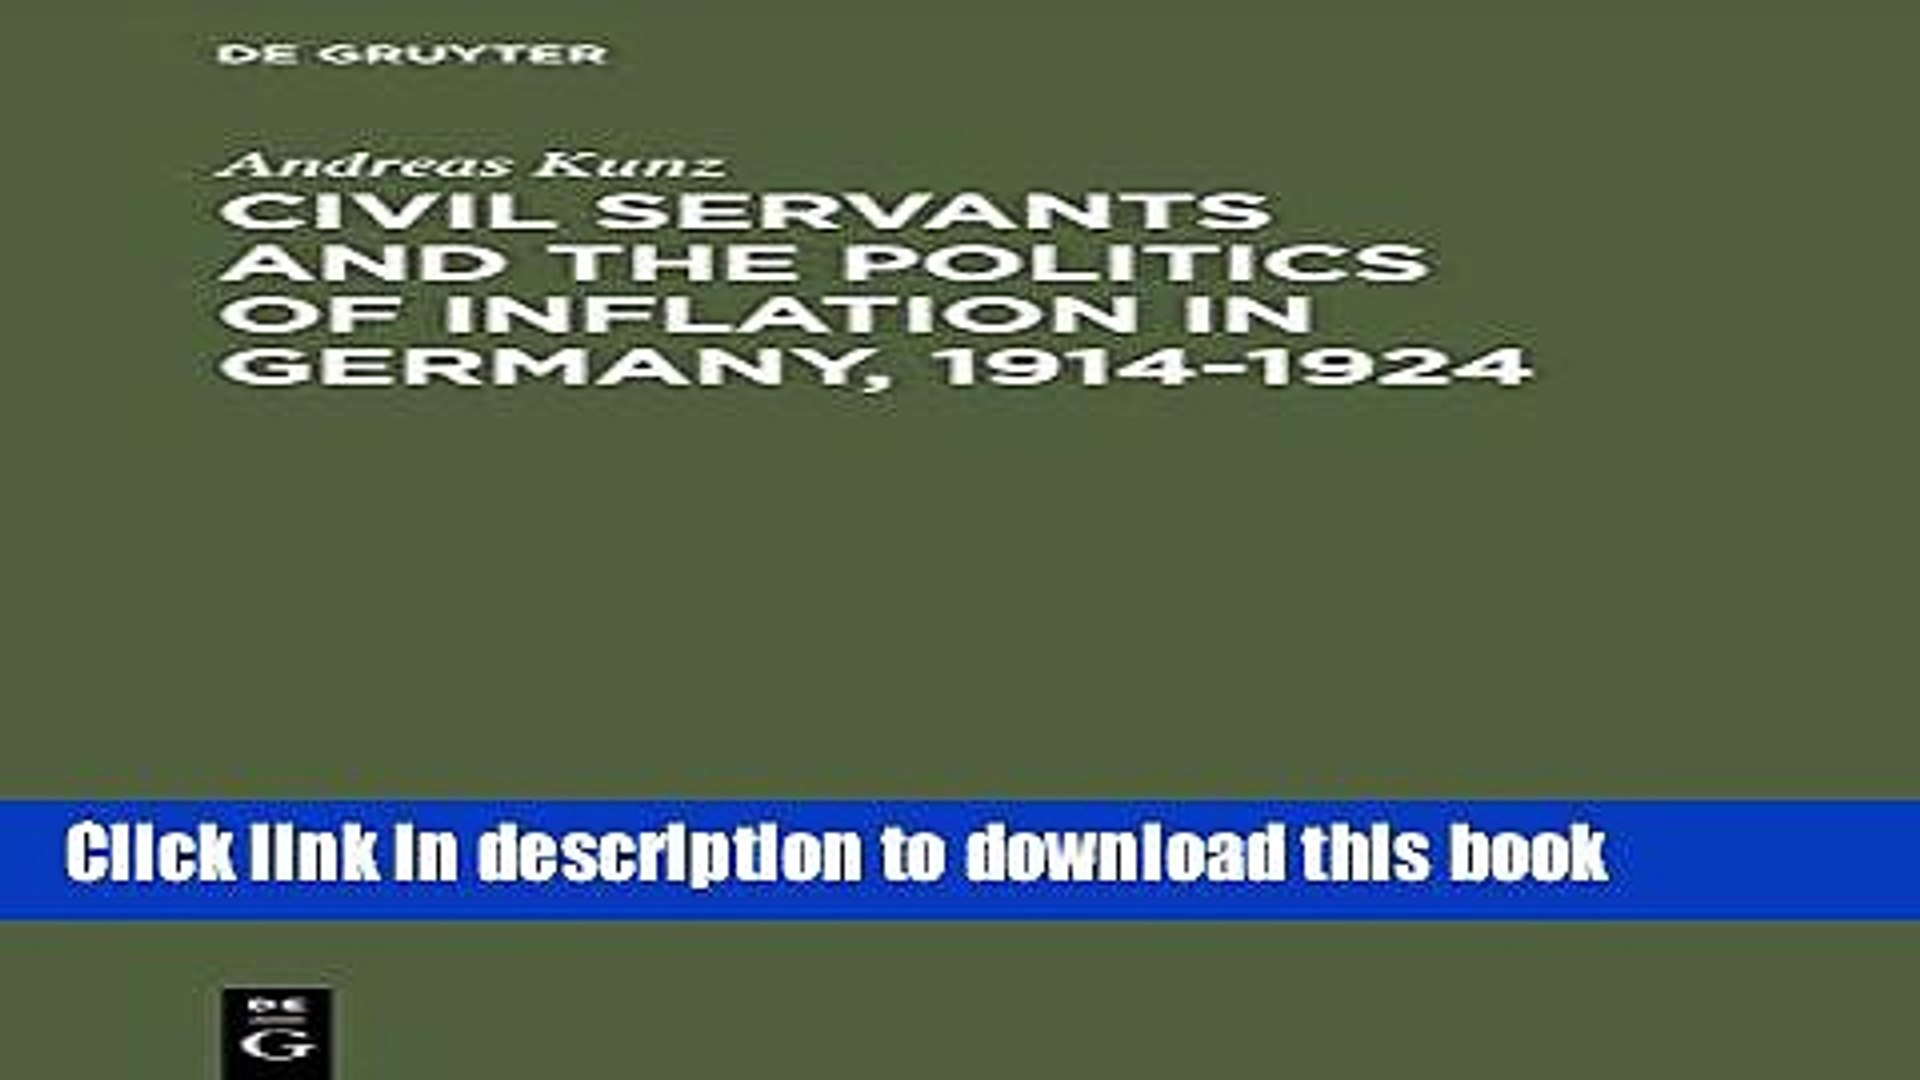 [PDF]  Civil Servants and the Politics of Inflation in Germany 1914-1924  [Download] Online